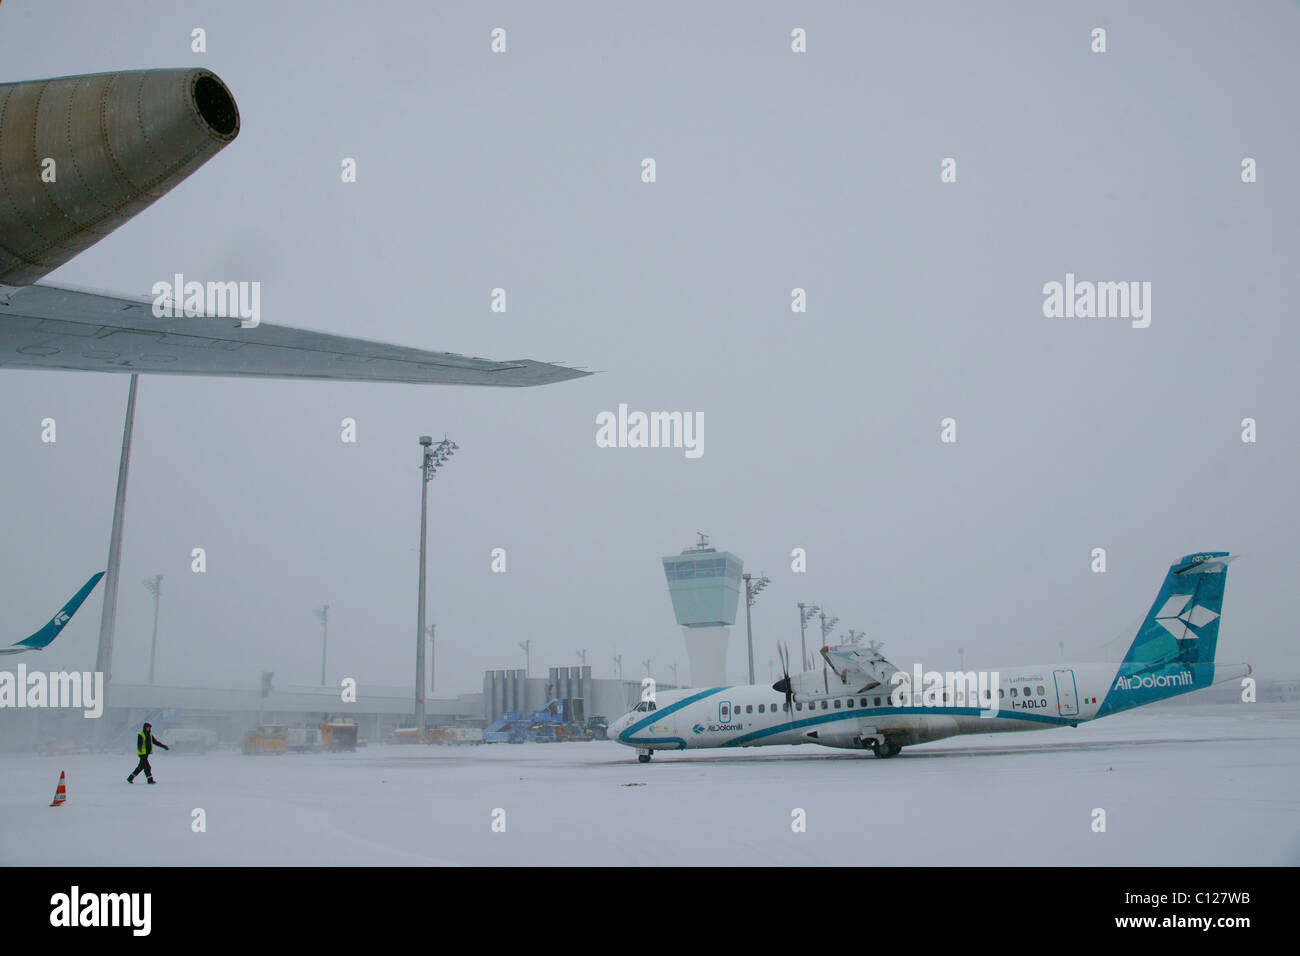 Snow, winter, roll out, Air Dolomiti airplane, control tower, east apron, Munich Airport, MUC, Bavaria, Germany, - Stock Image